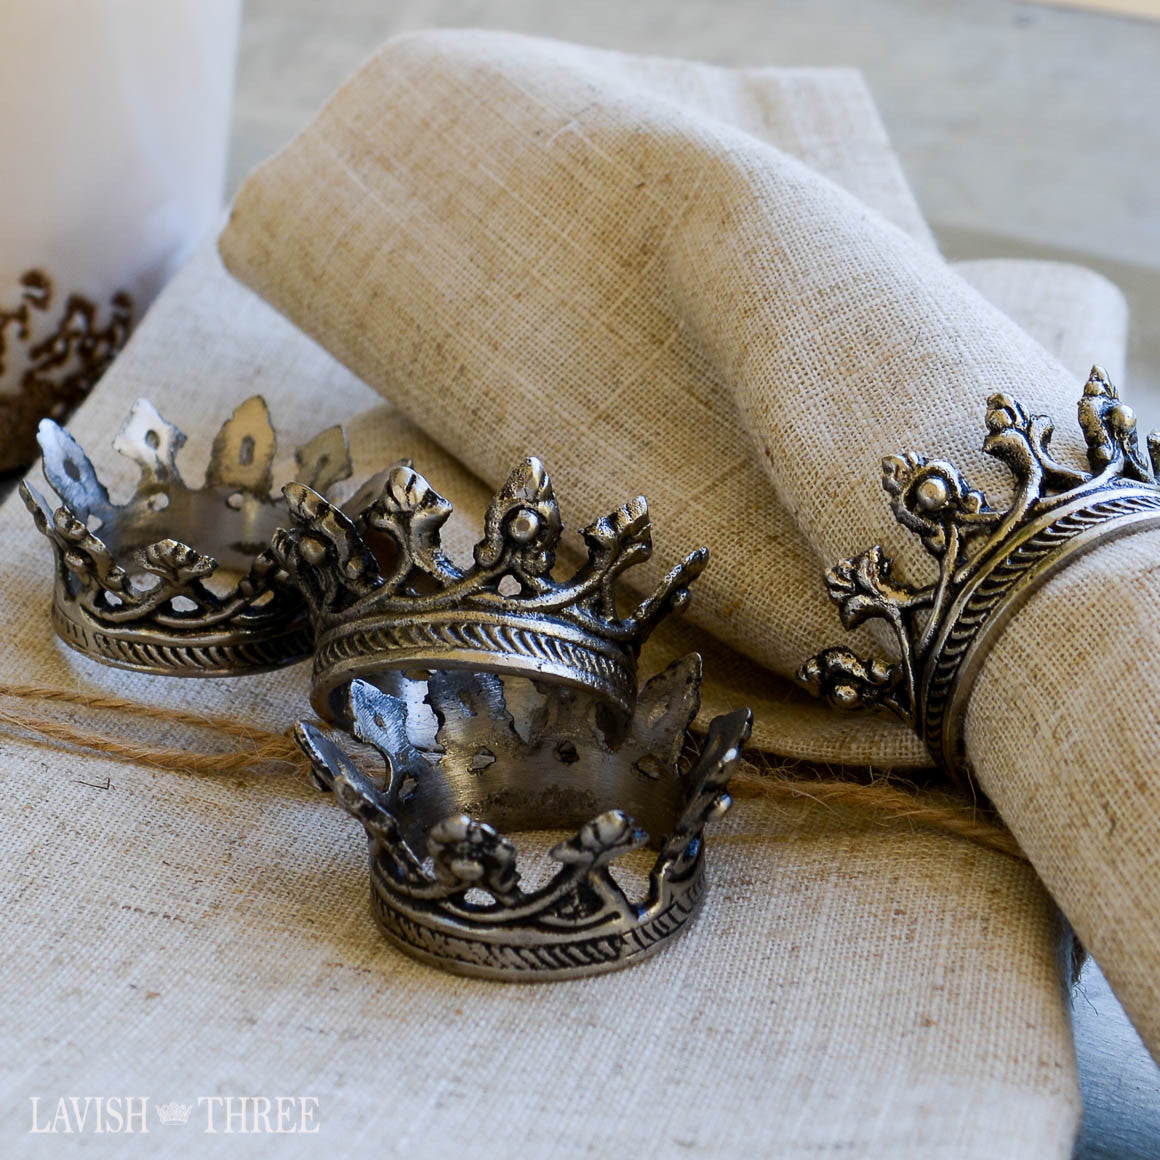 Majestic crown rustic metal napkin rings, Lavish Three 3